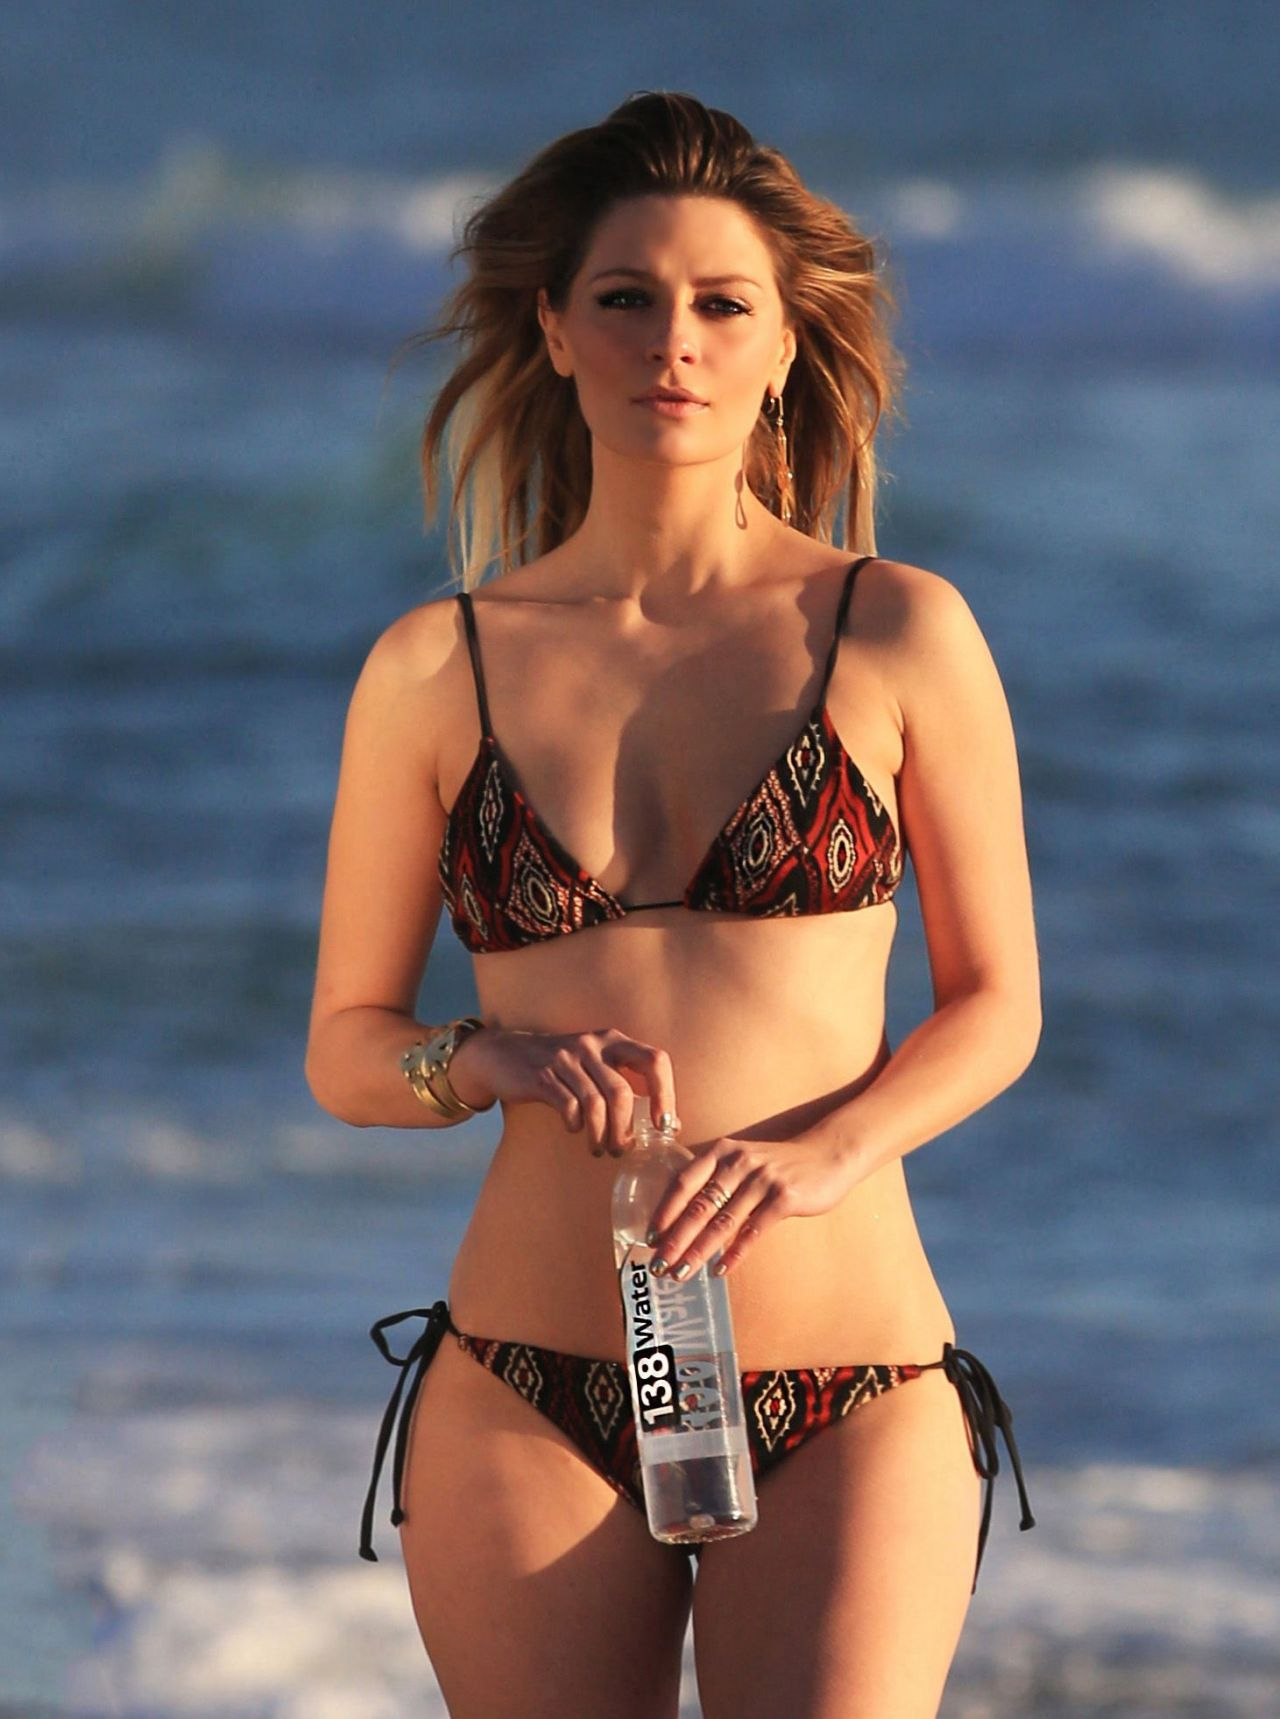 61 Hottest Stana Katic Pictures Will Make You Want Her Now